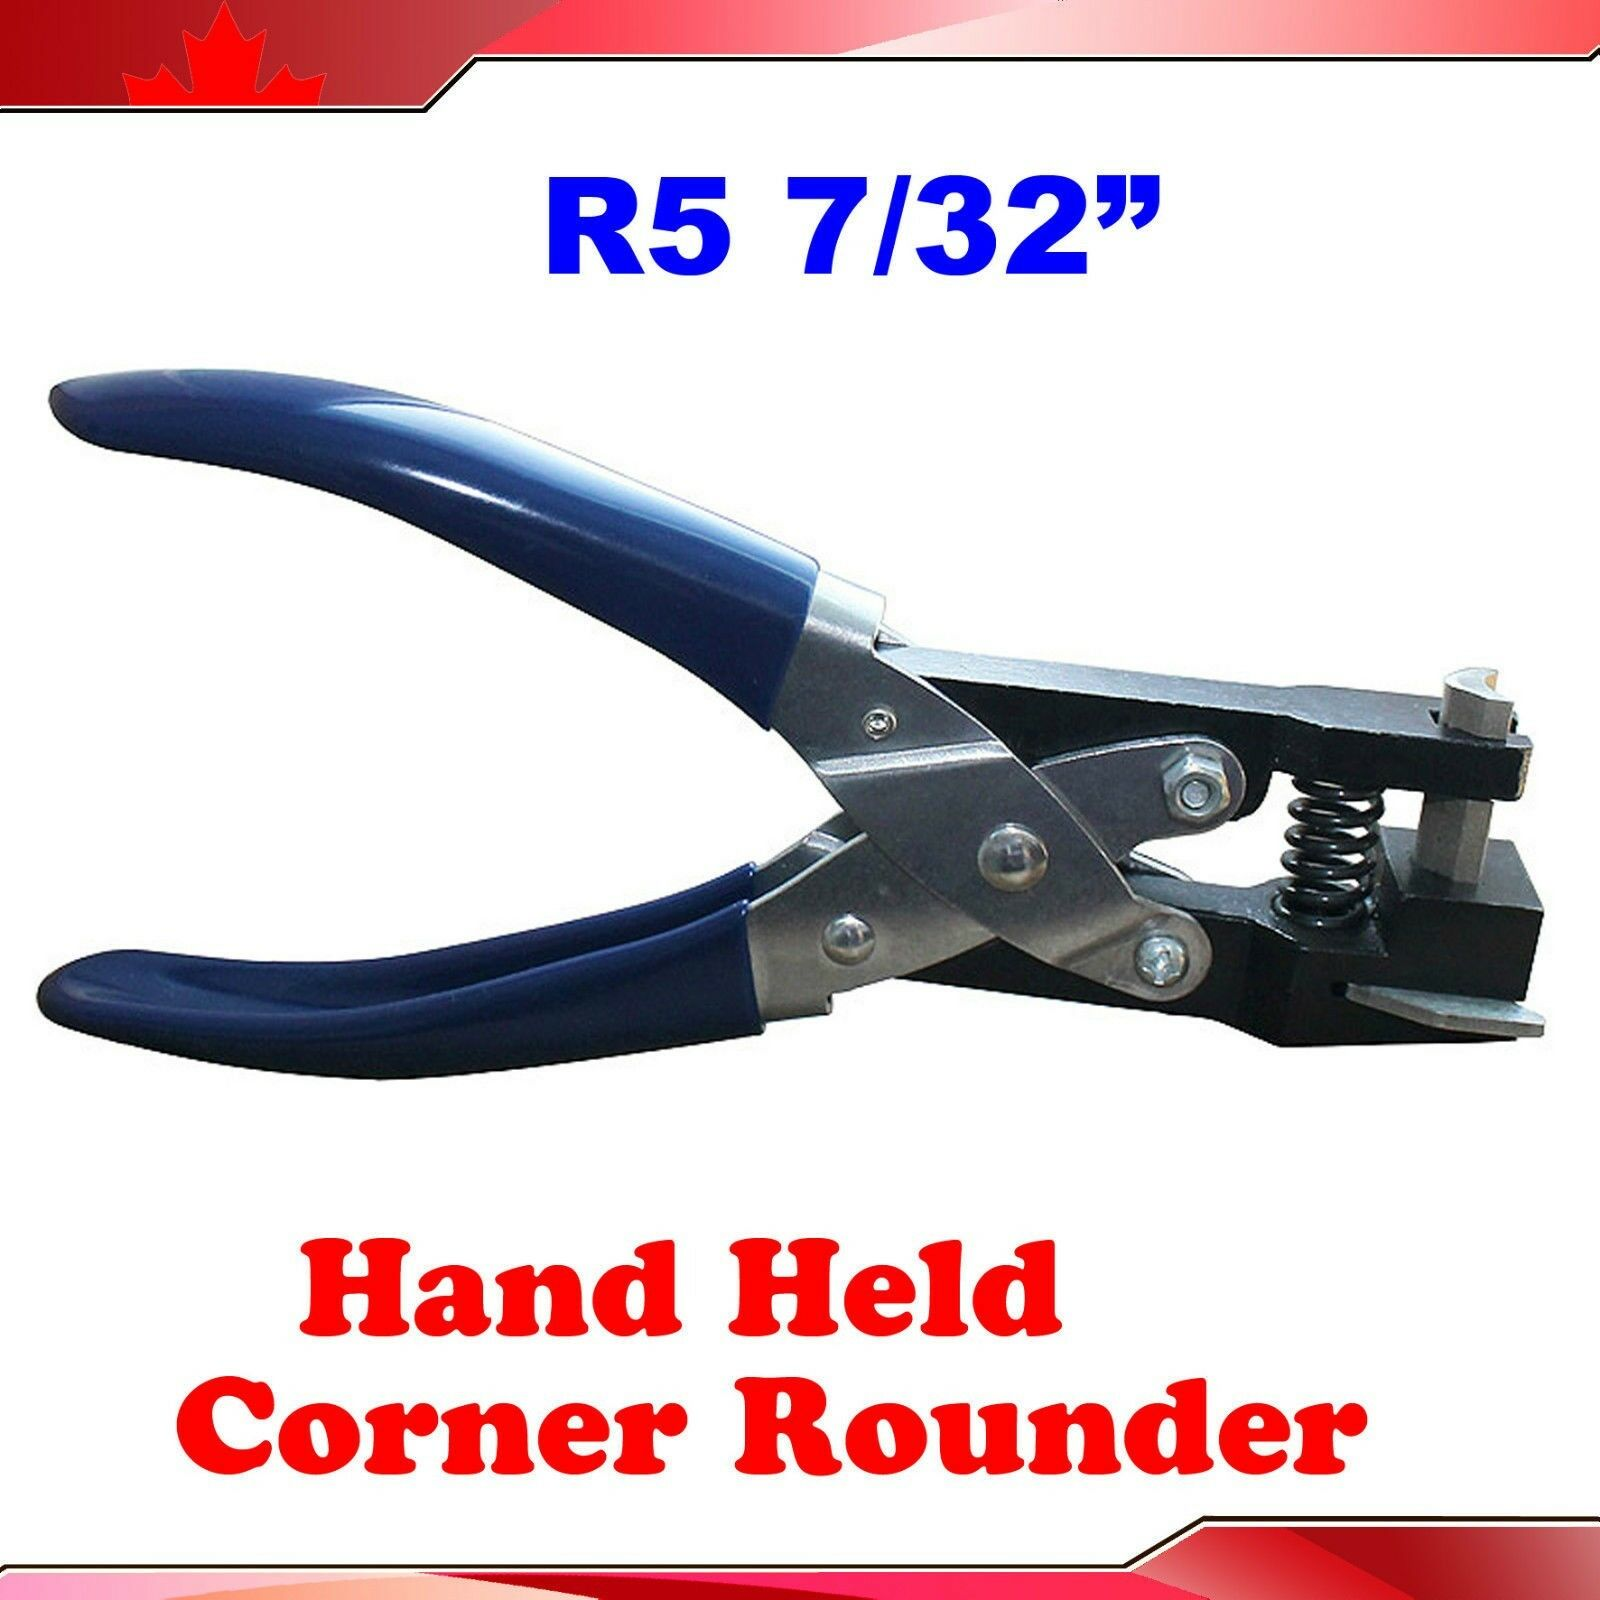 Hand hold r5 732 corner rounder business card punch all steel picture 1 of 3 magicingreecefo Images